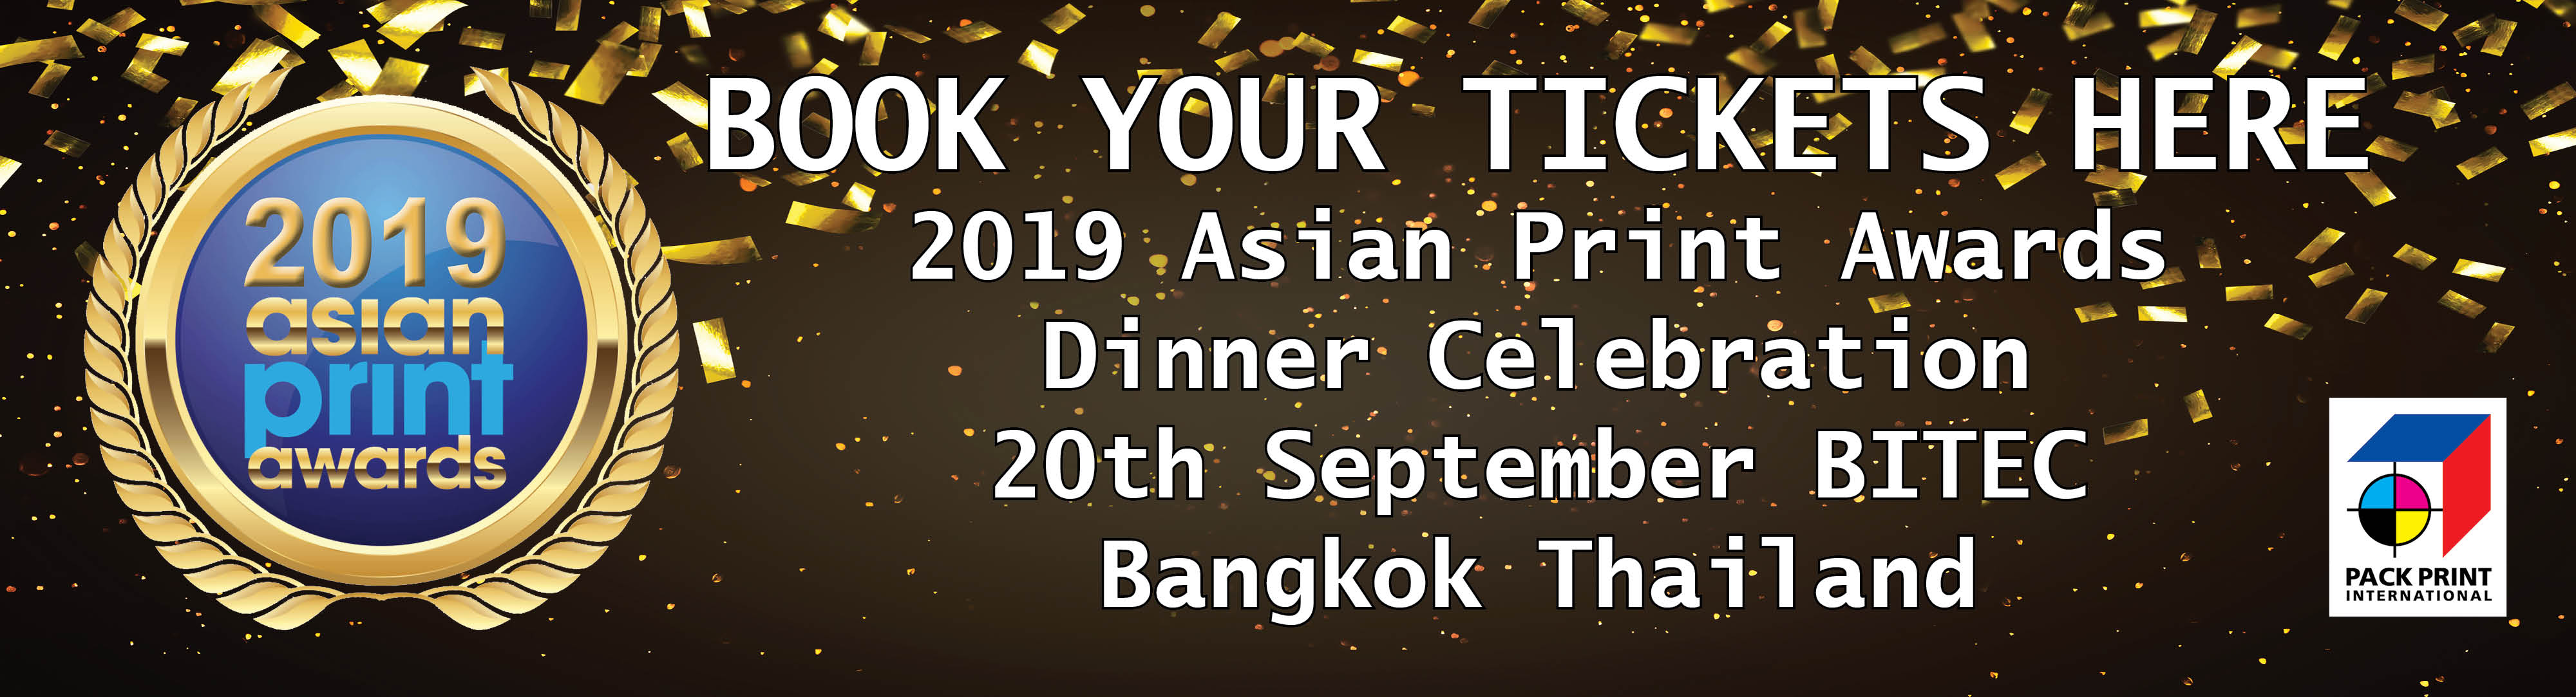 Asian Print Awards Banner Image